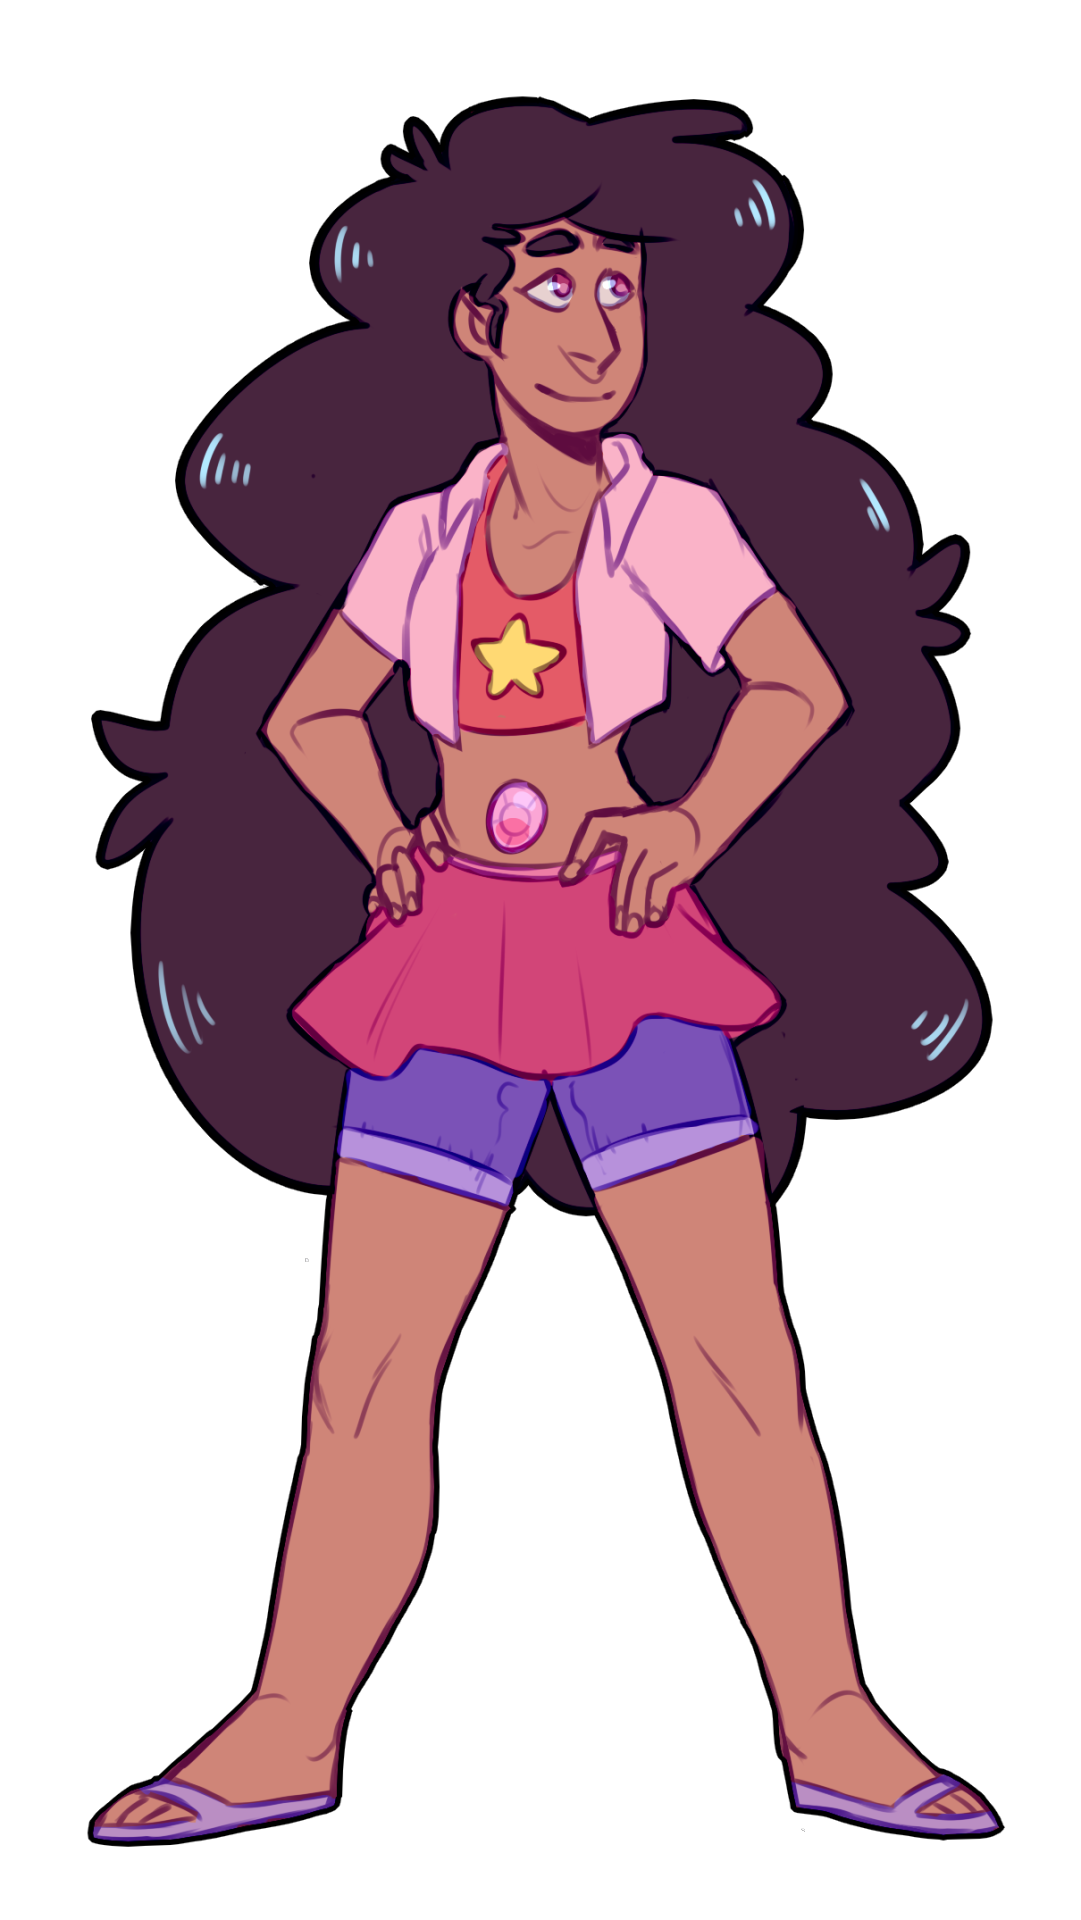 alternate stevonnie - based on the outfits from 'steven's birthday'